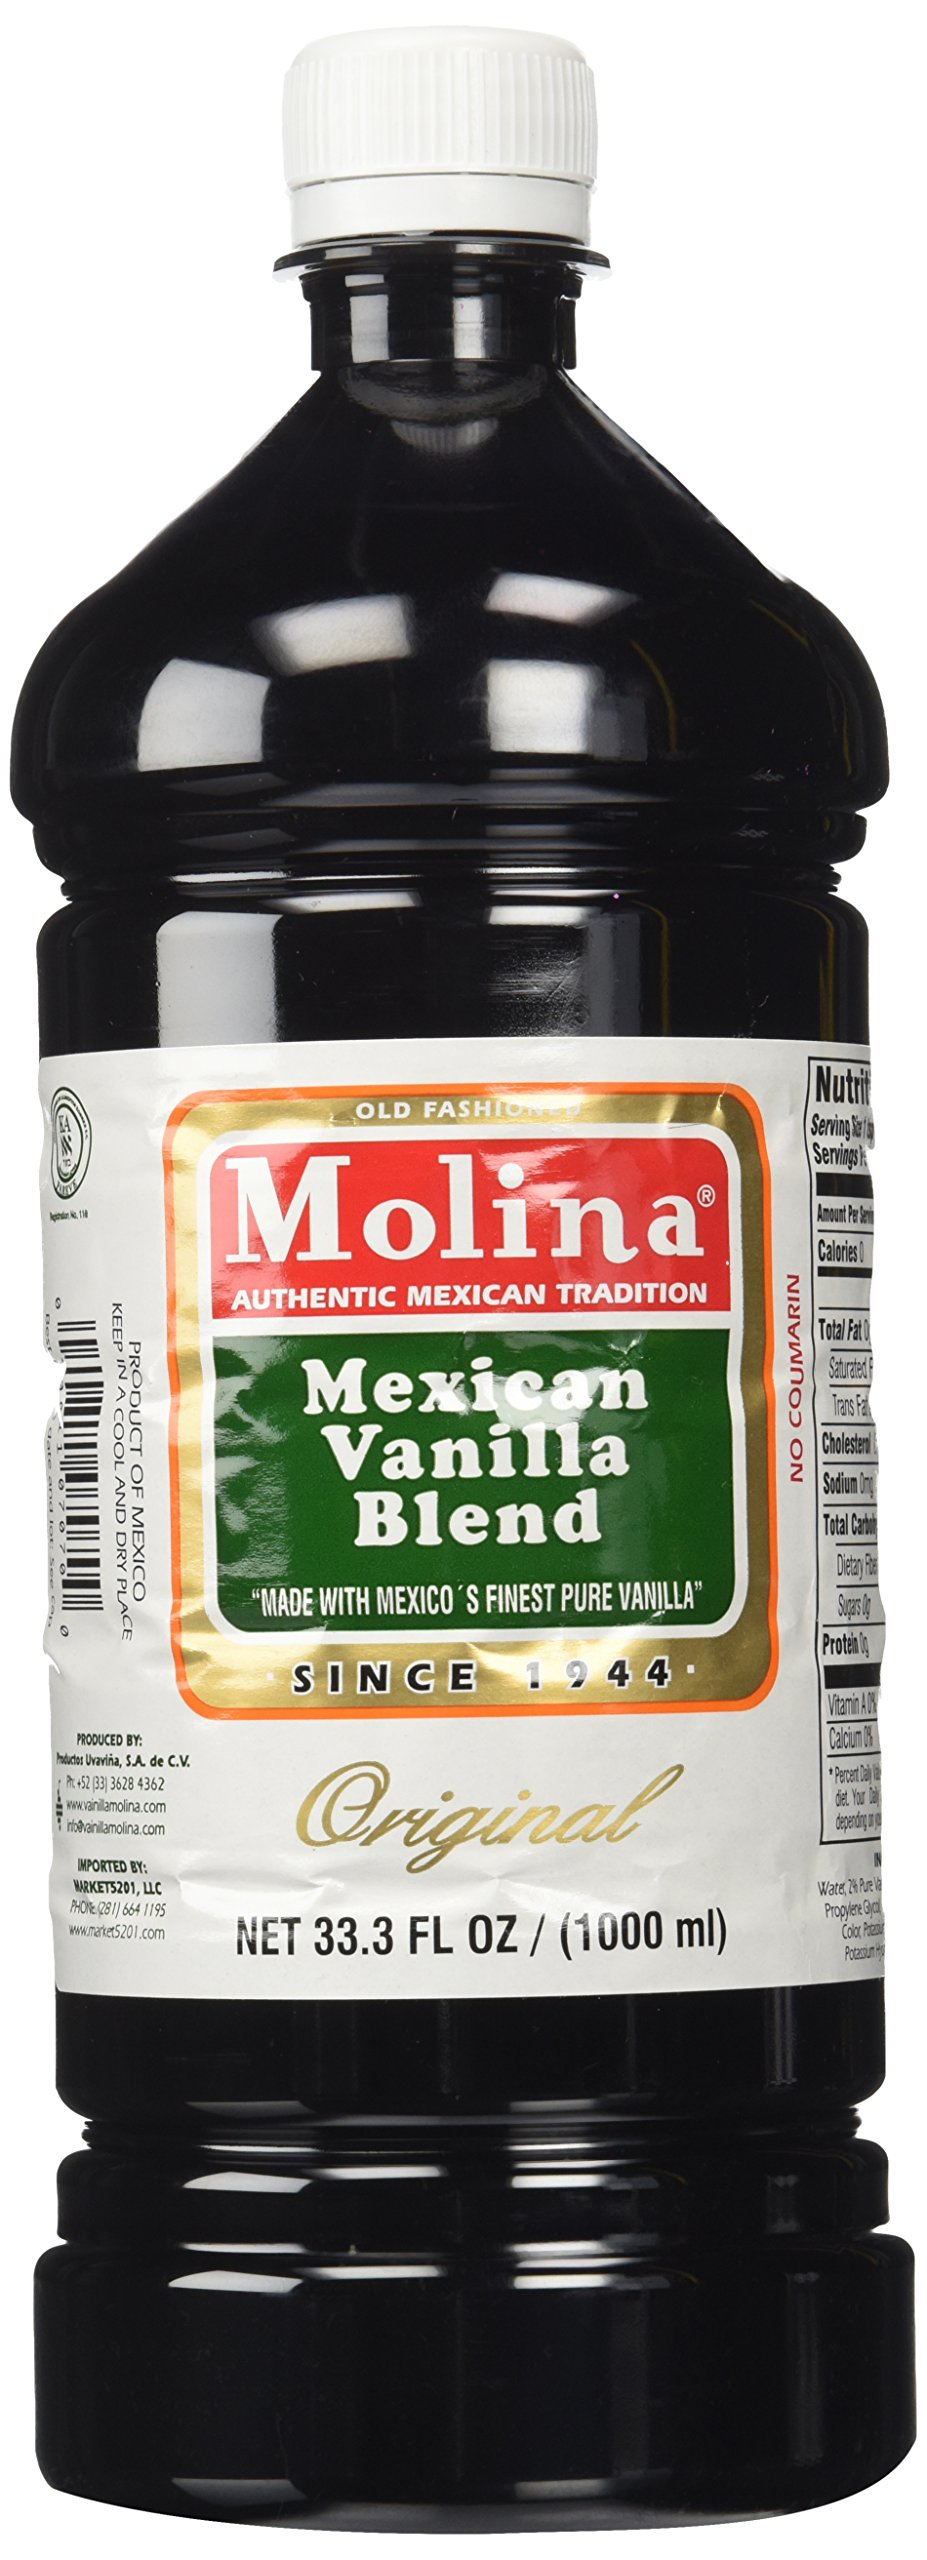 Mexican Vanilla Blend By Molina Vainilla, 33.3 Oz / 1000 Ml (Vanillin Extract) by Molina Vanilla